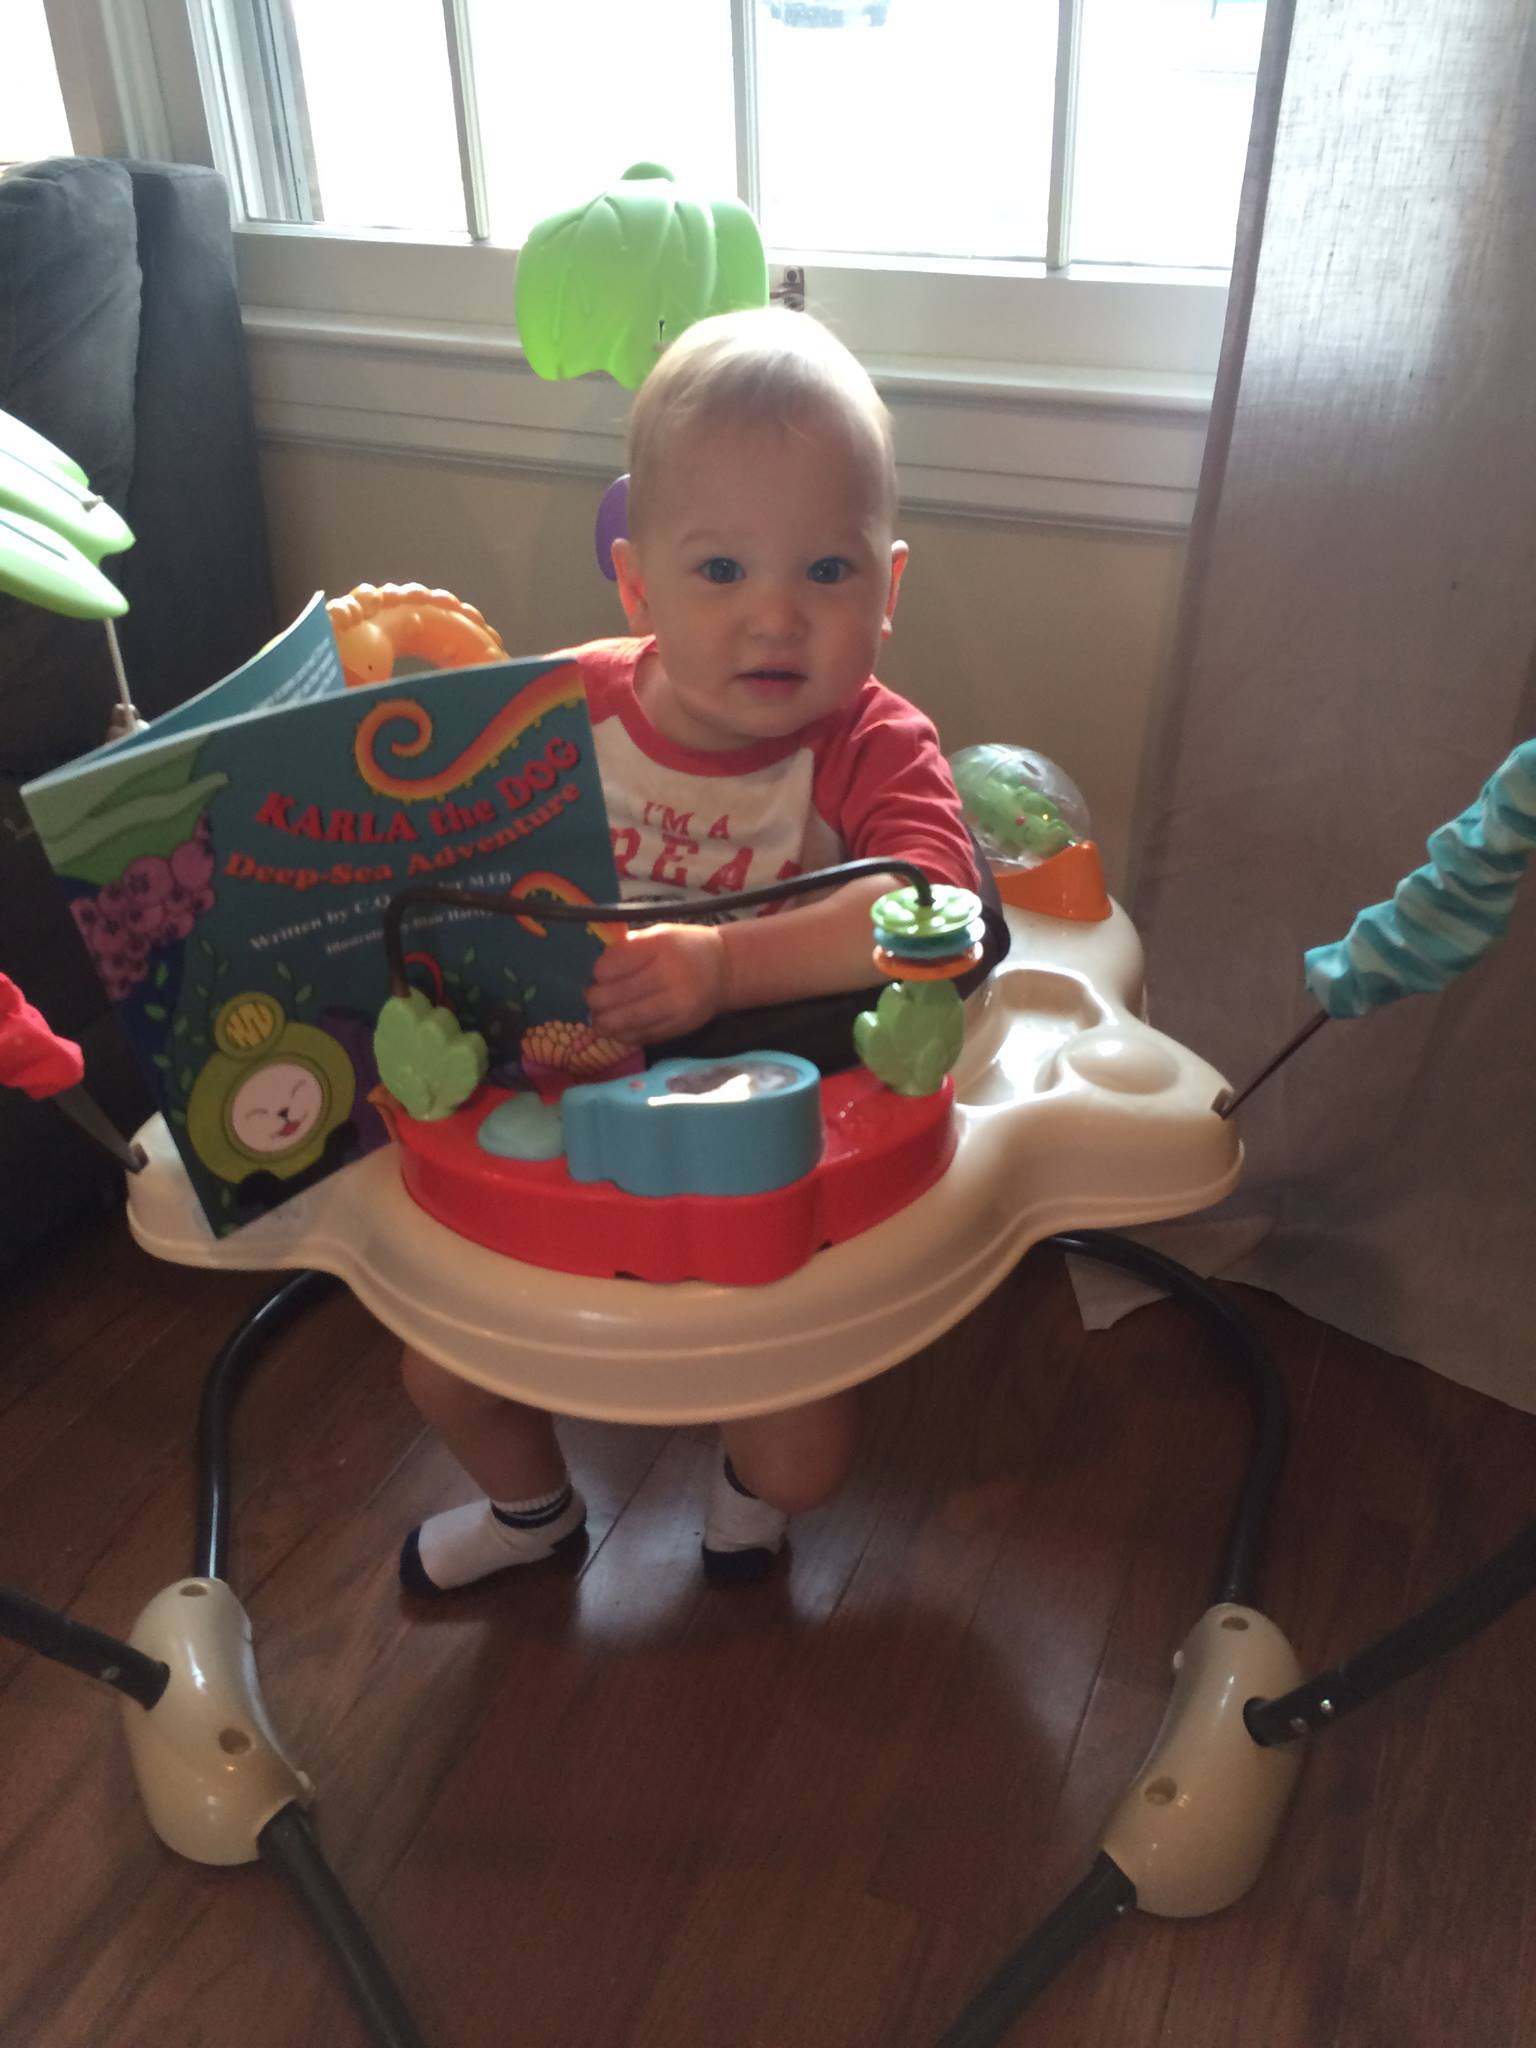 Levi loves Karla...never too young to read!